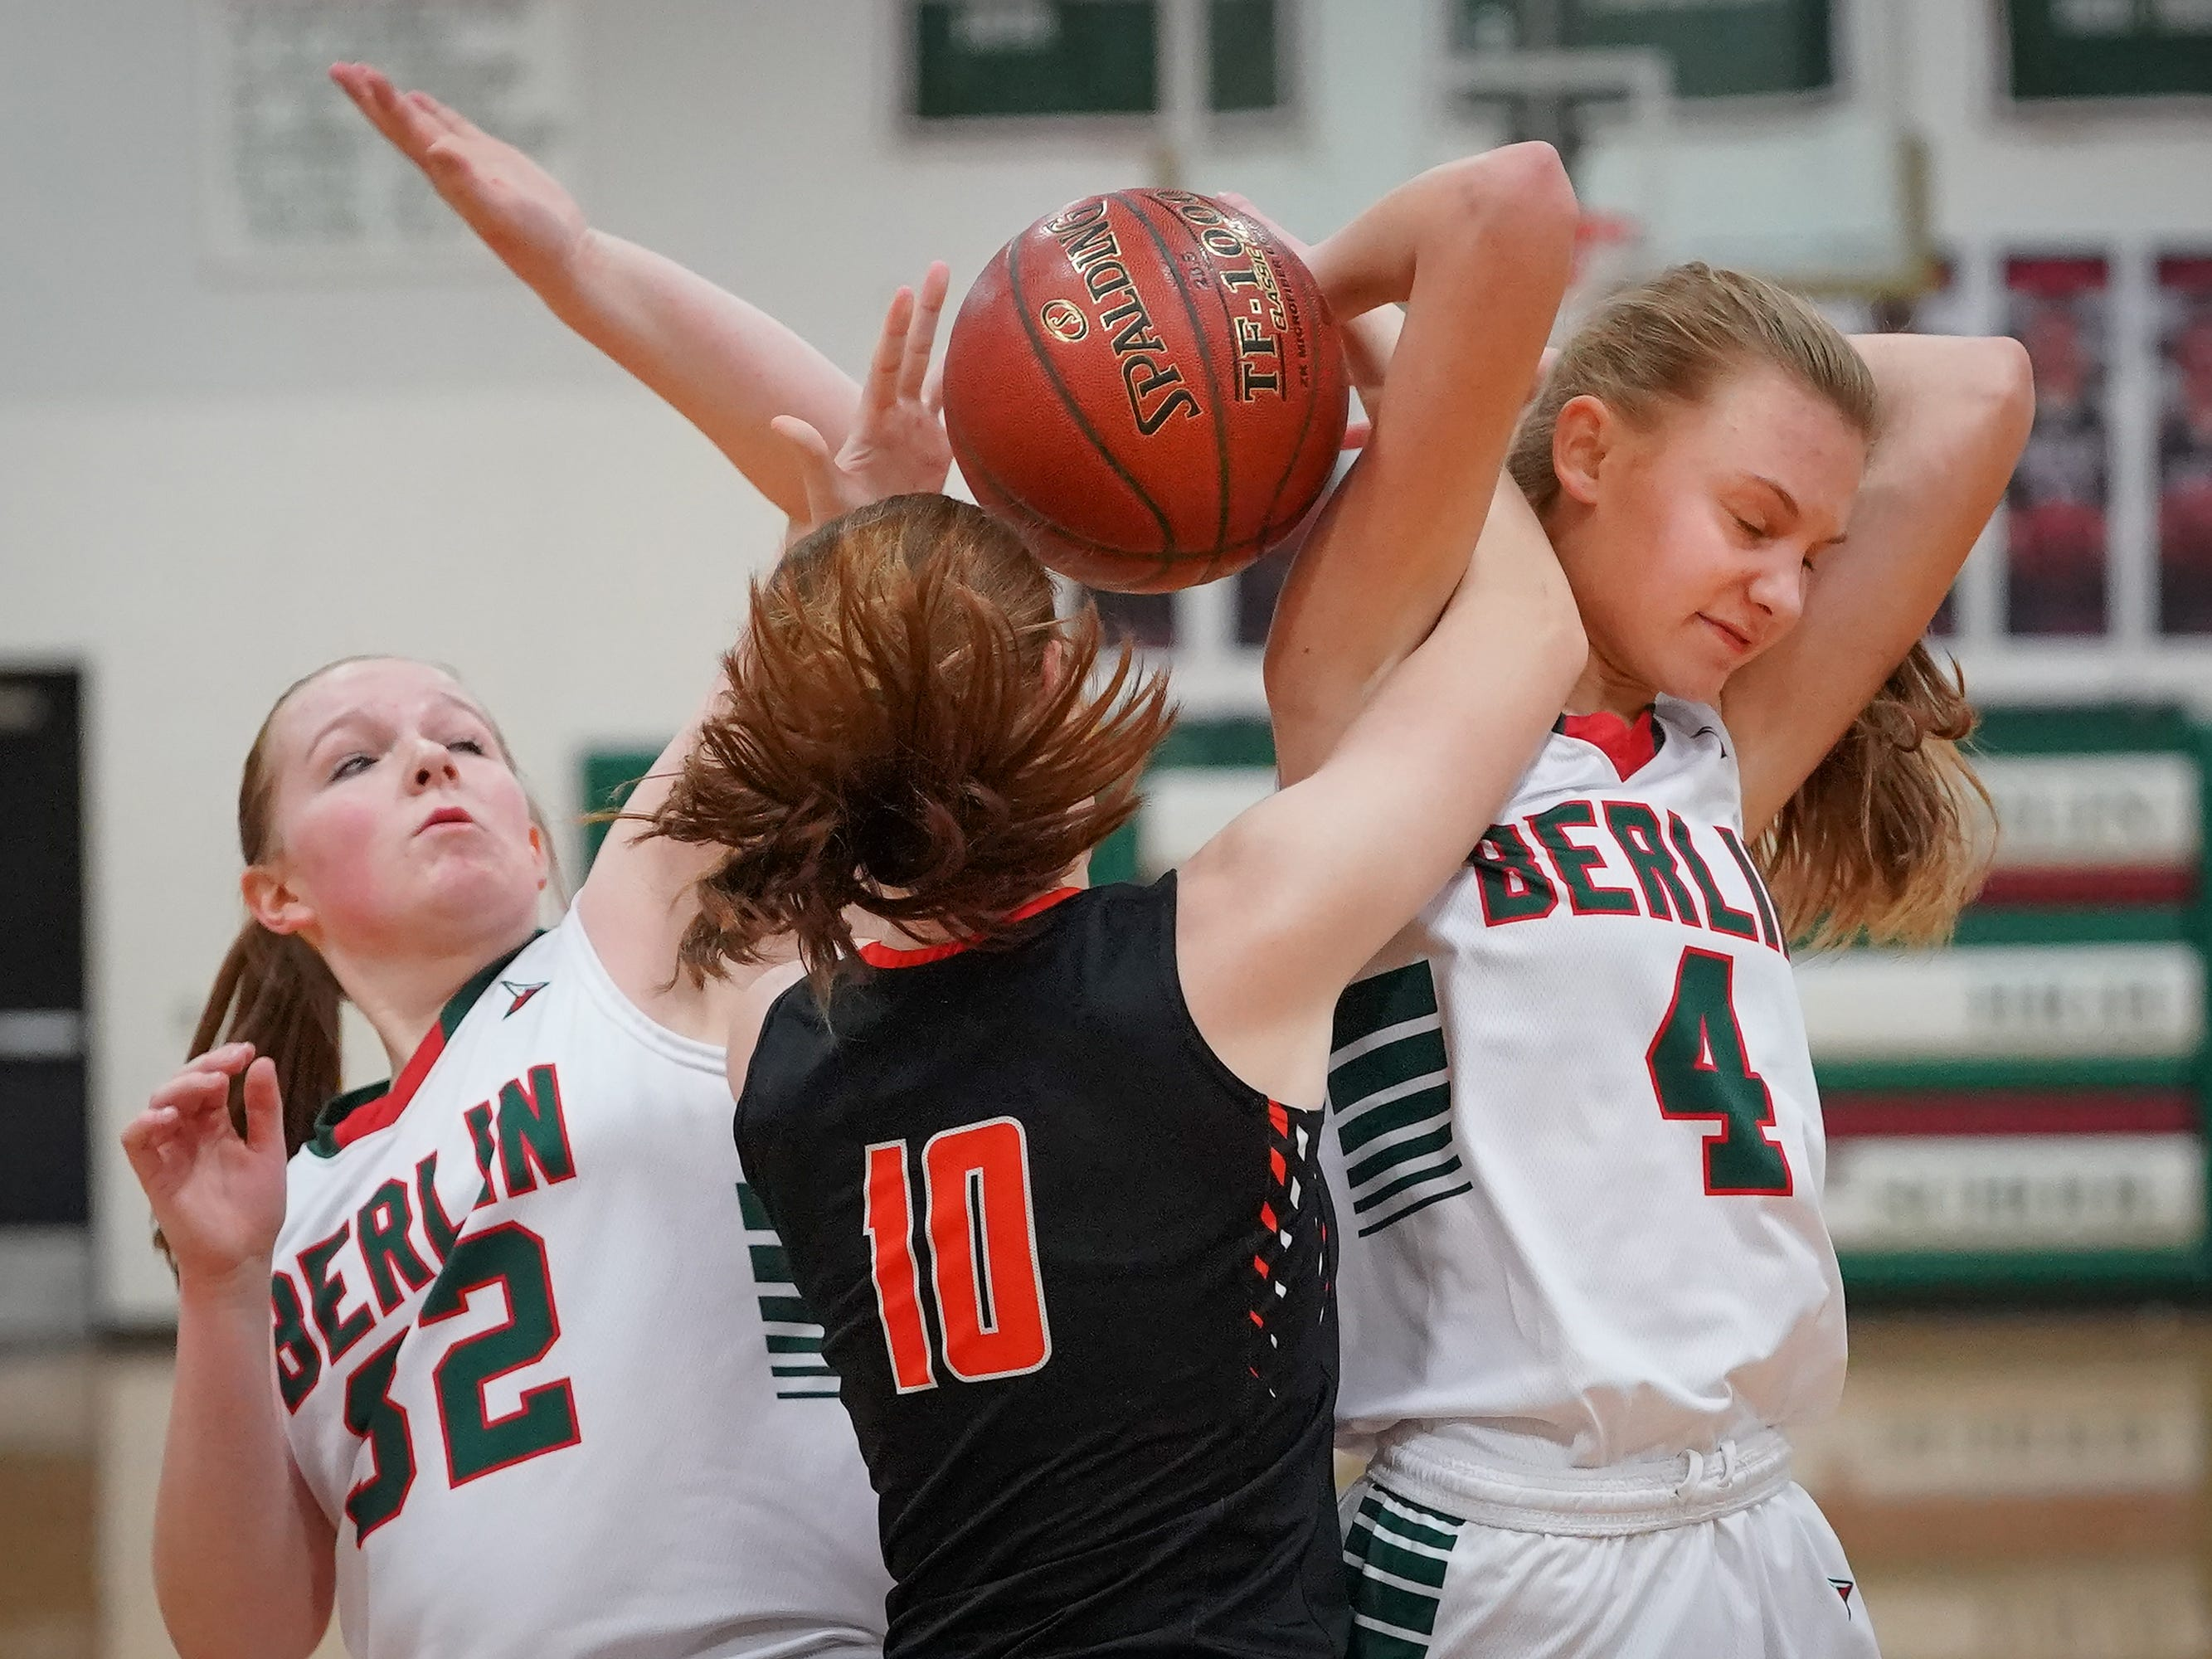 Hana Goeser (10) of Plymouth battles Jenna Sternitske (32) and Olivia Bartol (4) of Berlin for the ball. The Berlin Indians hosted the Plymouth Panthers in an East Central Conference basketball game Thursday evening, December 13, 2018.